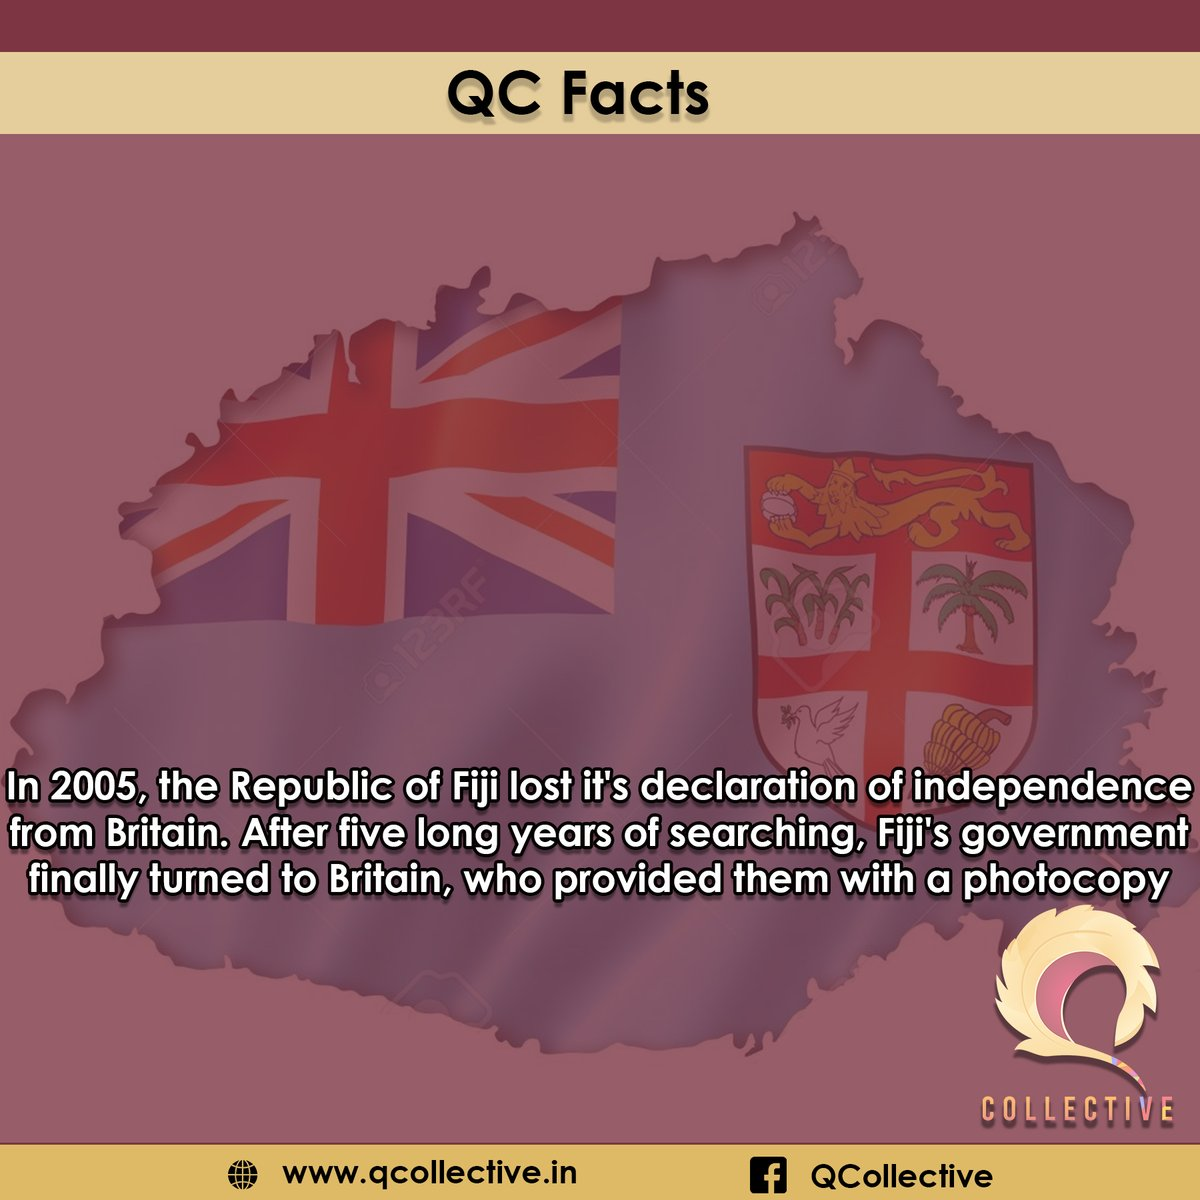 #QCFacts #QCollective #quiz #quizmasters #keralaquizzing #indiaquizzers #keralaquizzers #worldfacts #trivia #Facts #Fact #TwitterDaily #DailyFacts #FactDose #FactDailypic.twitter.com/TUnT6lTksh